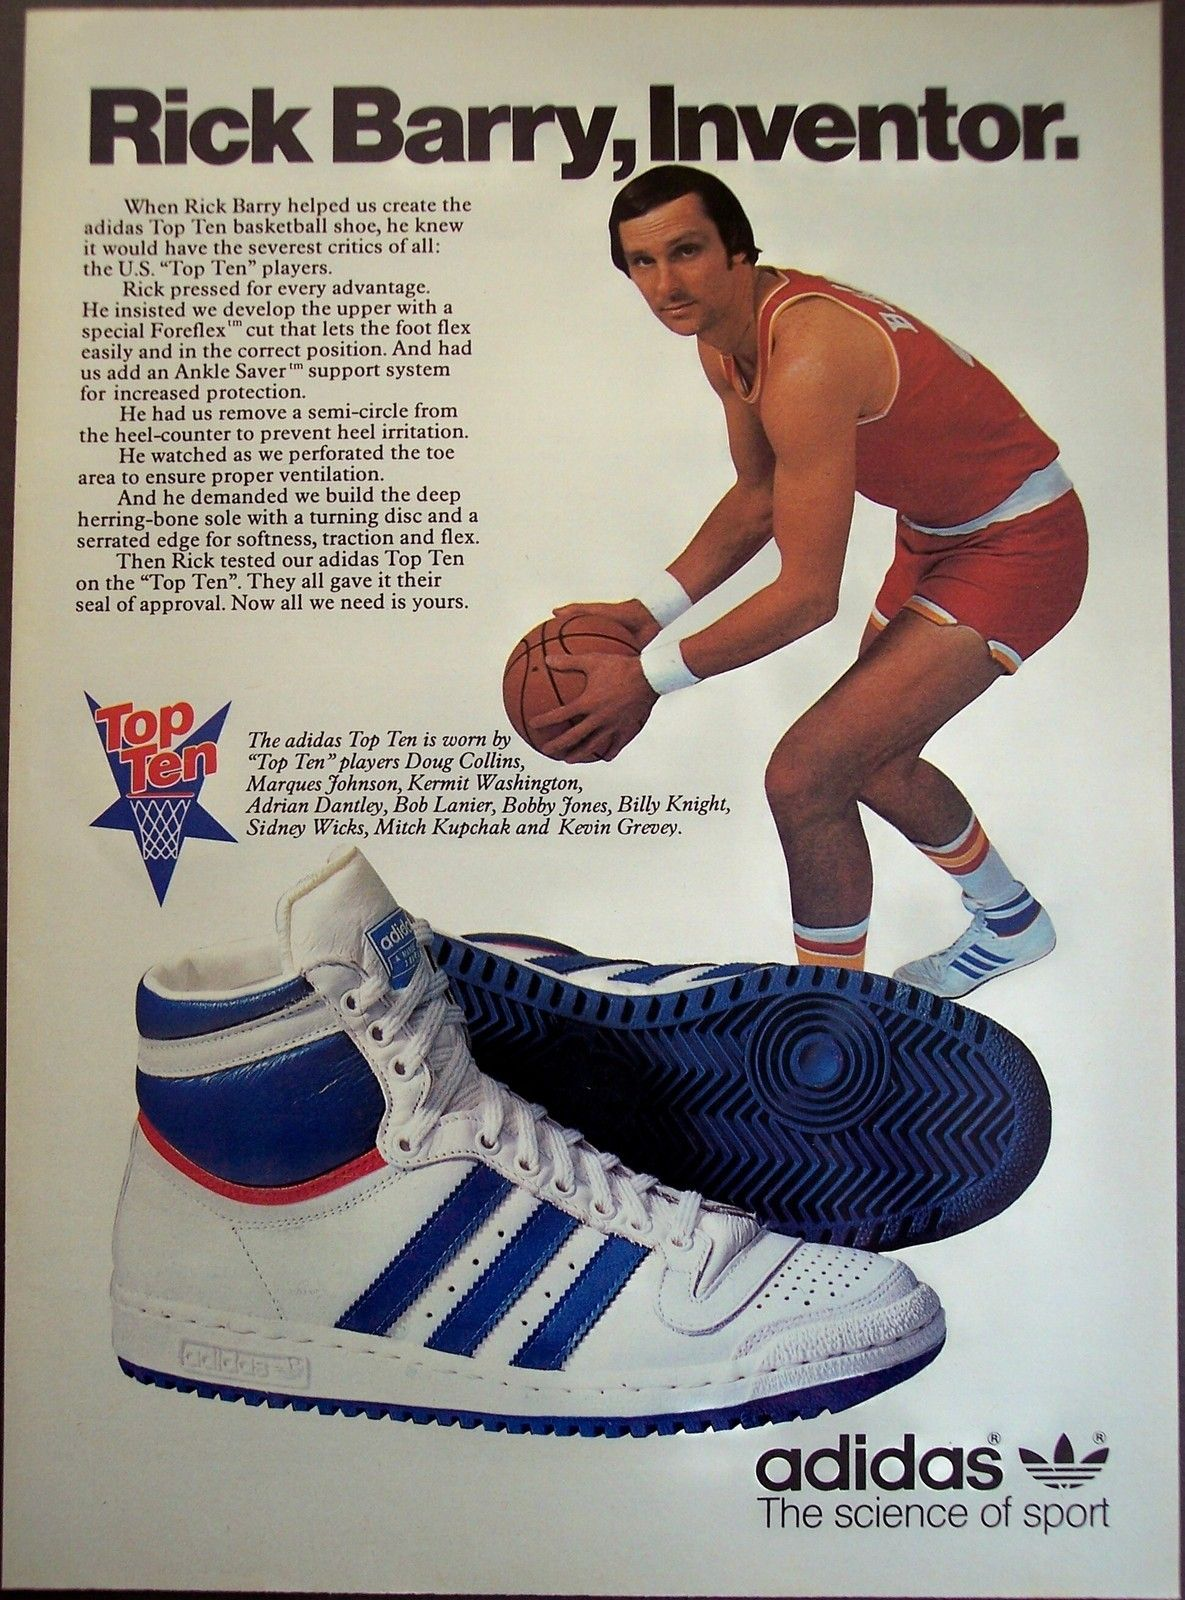 Awesome product focused ad for Adidas basketball shoes, ala